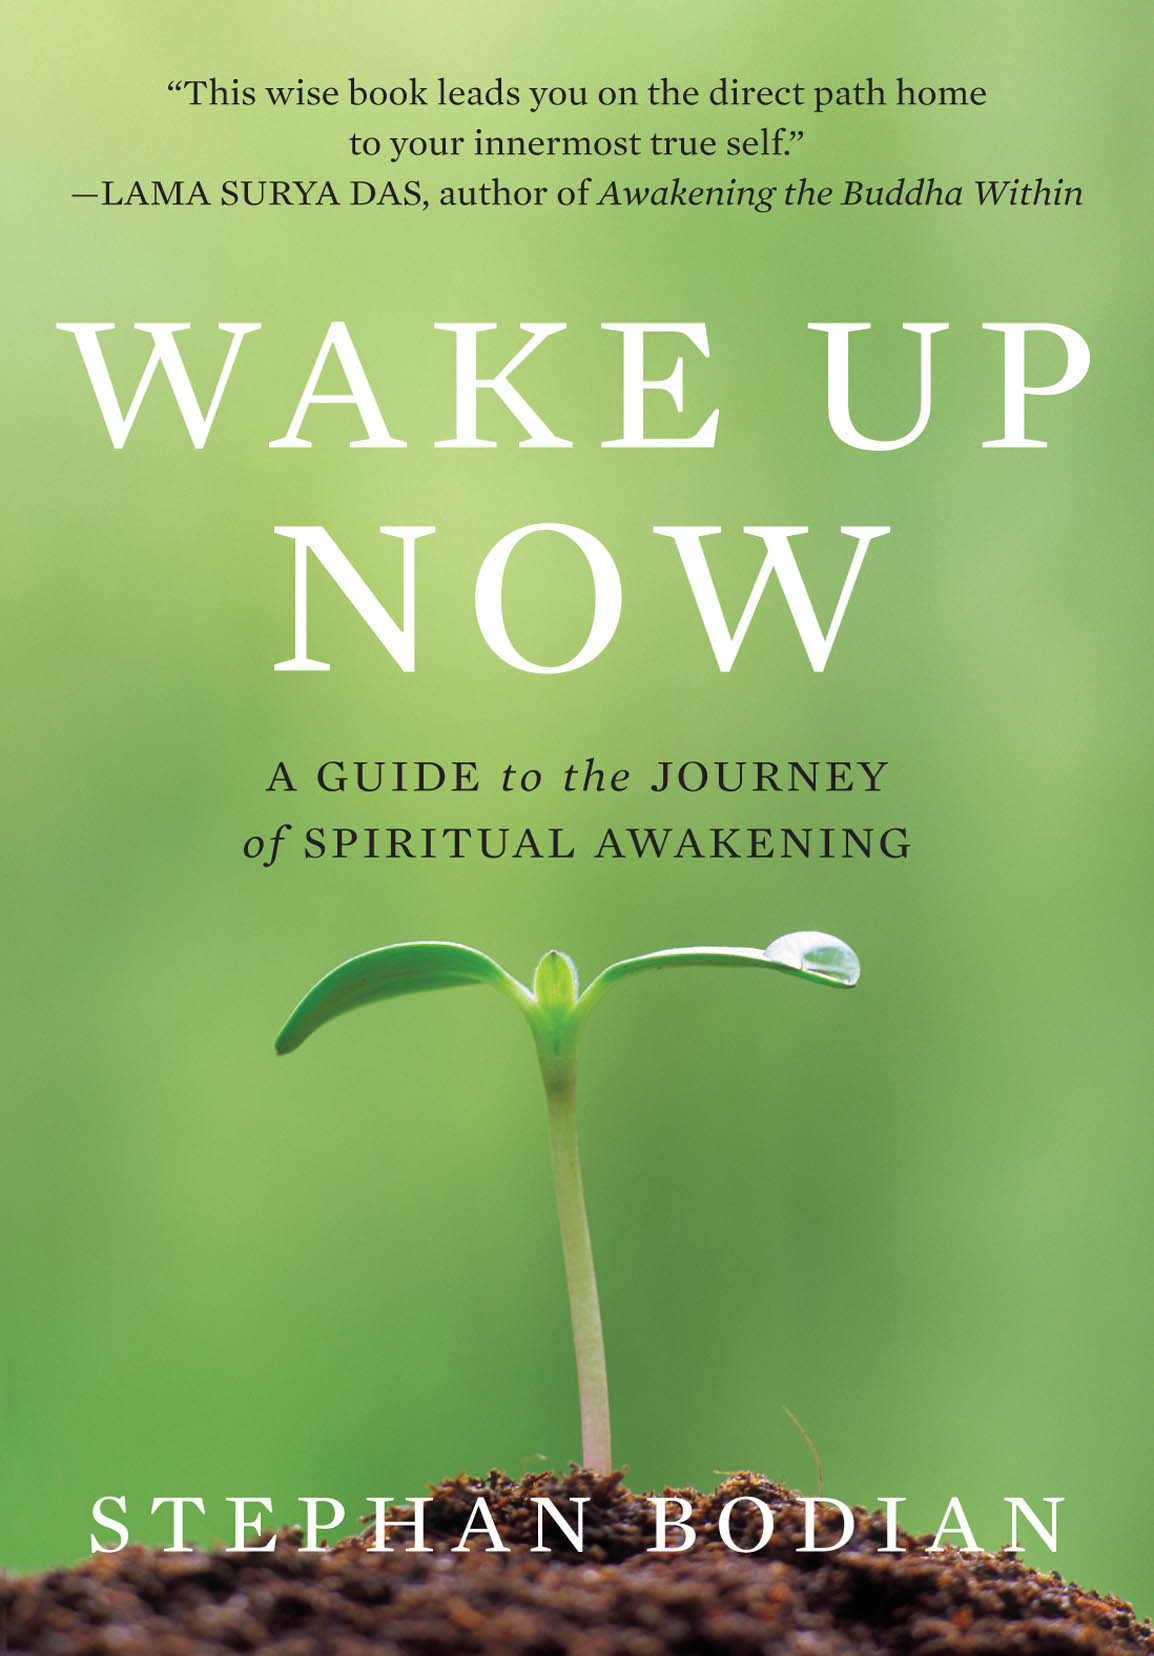 Download Ebook Wake Up Now by Stephan Bodian Pdf